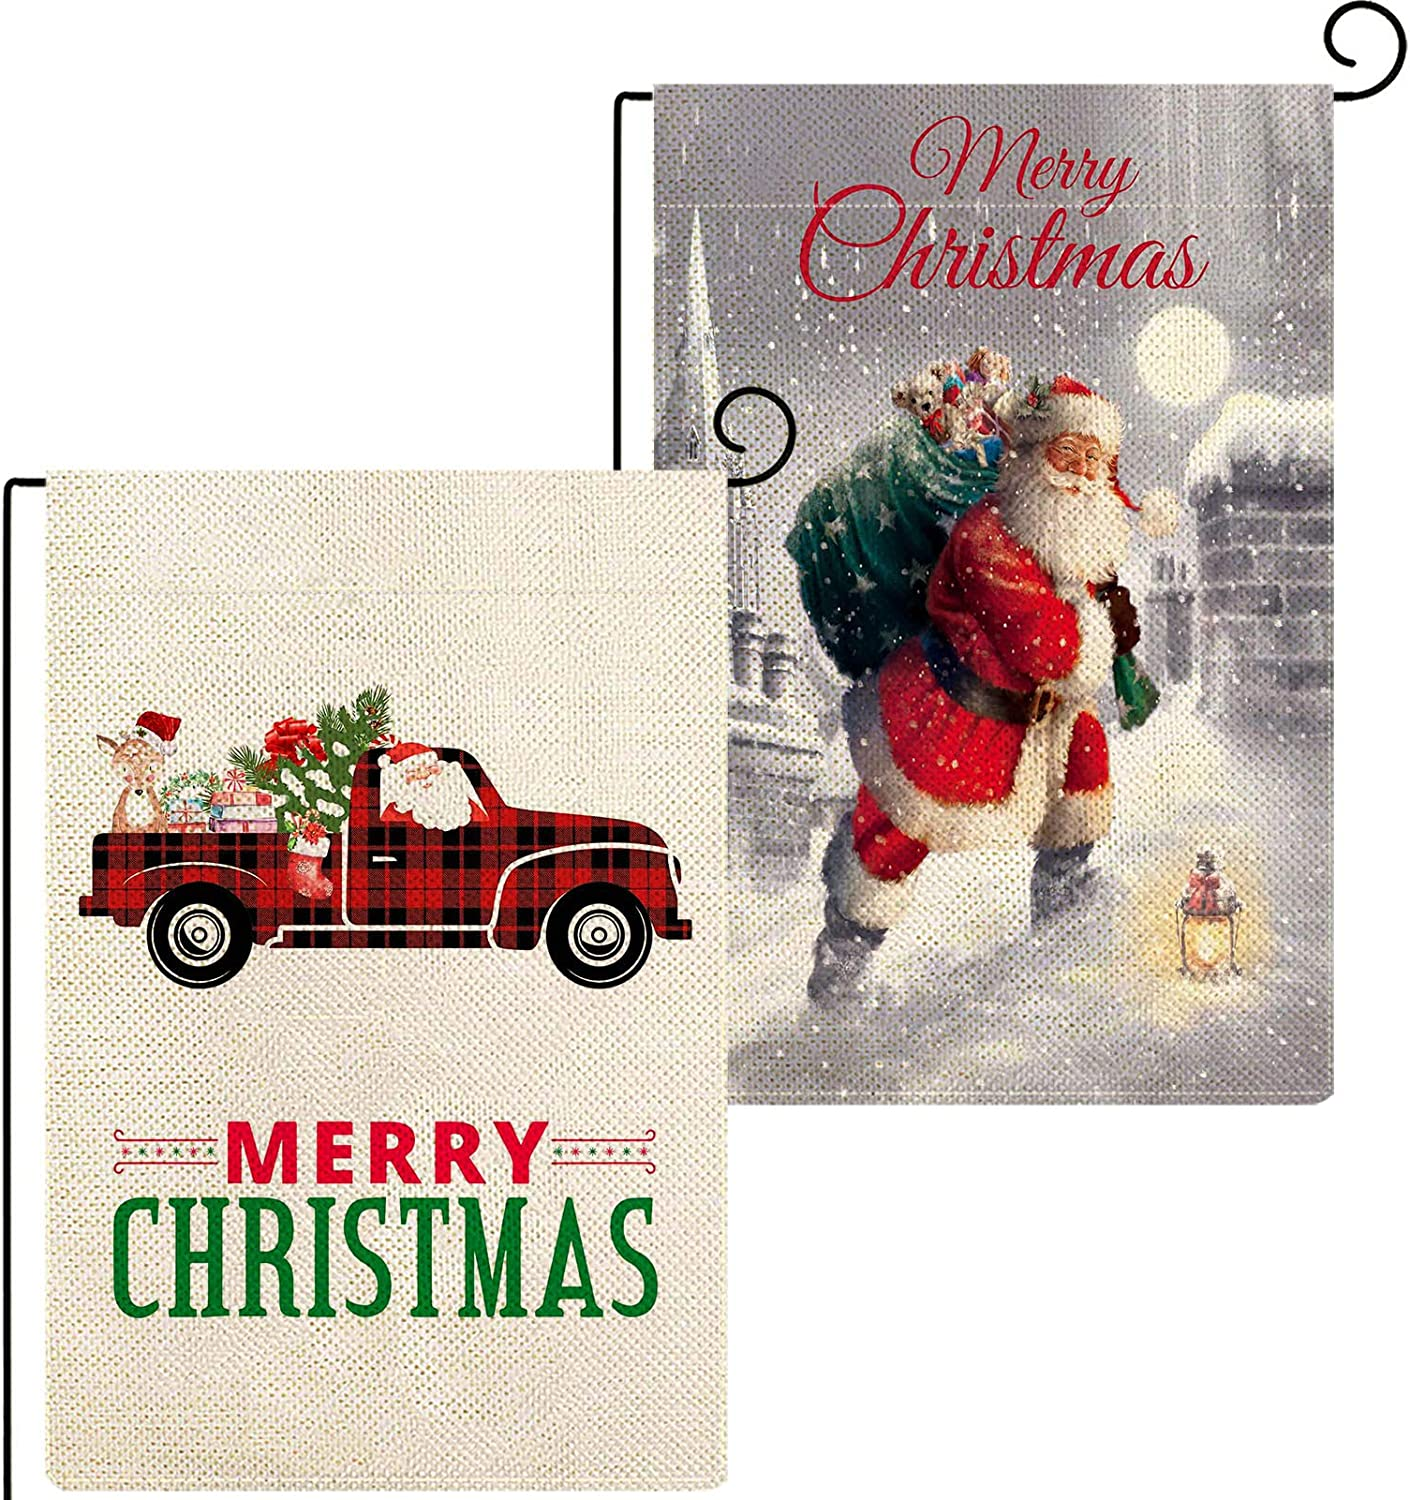 Baccessor Merry Christmas Garden Flag 12.5 x 18 Inch Bundle with Red Truck Double Sided Burlap Winter Yard Holiday Outdoor Outside Seasonal Decoration